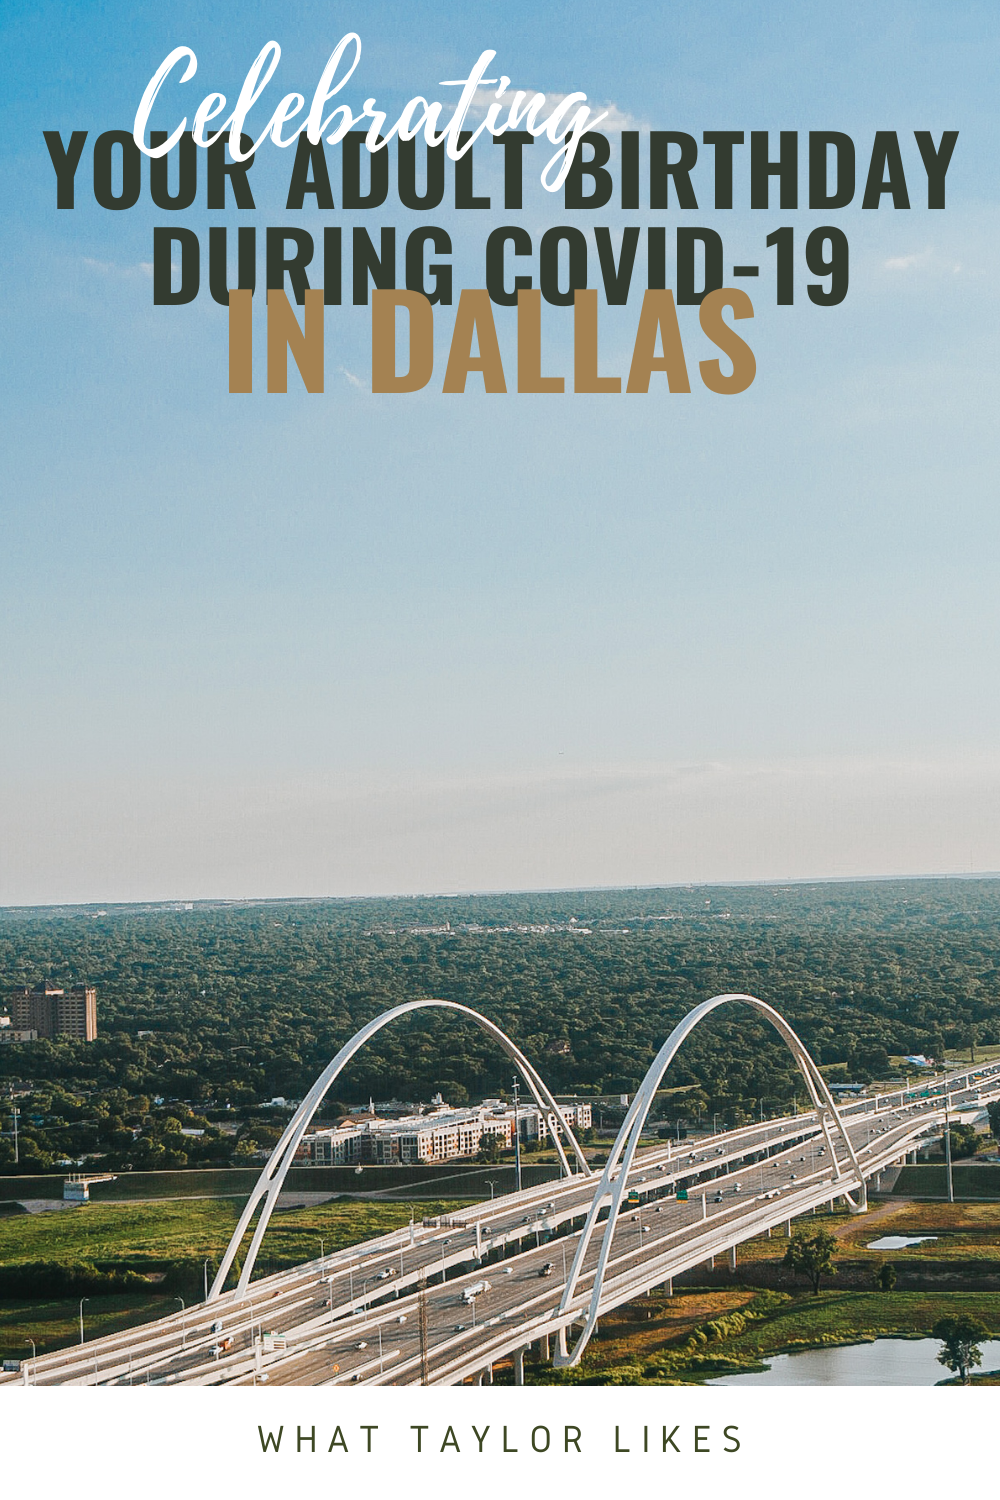 How to Celebrate Your Adult Birthday During Covid 19 in Dallas